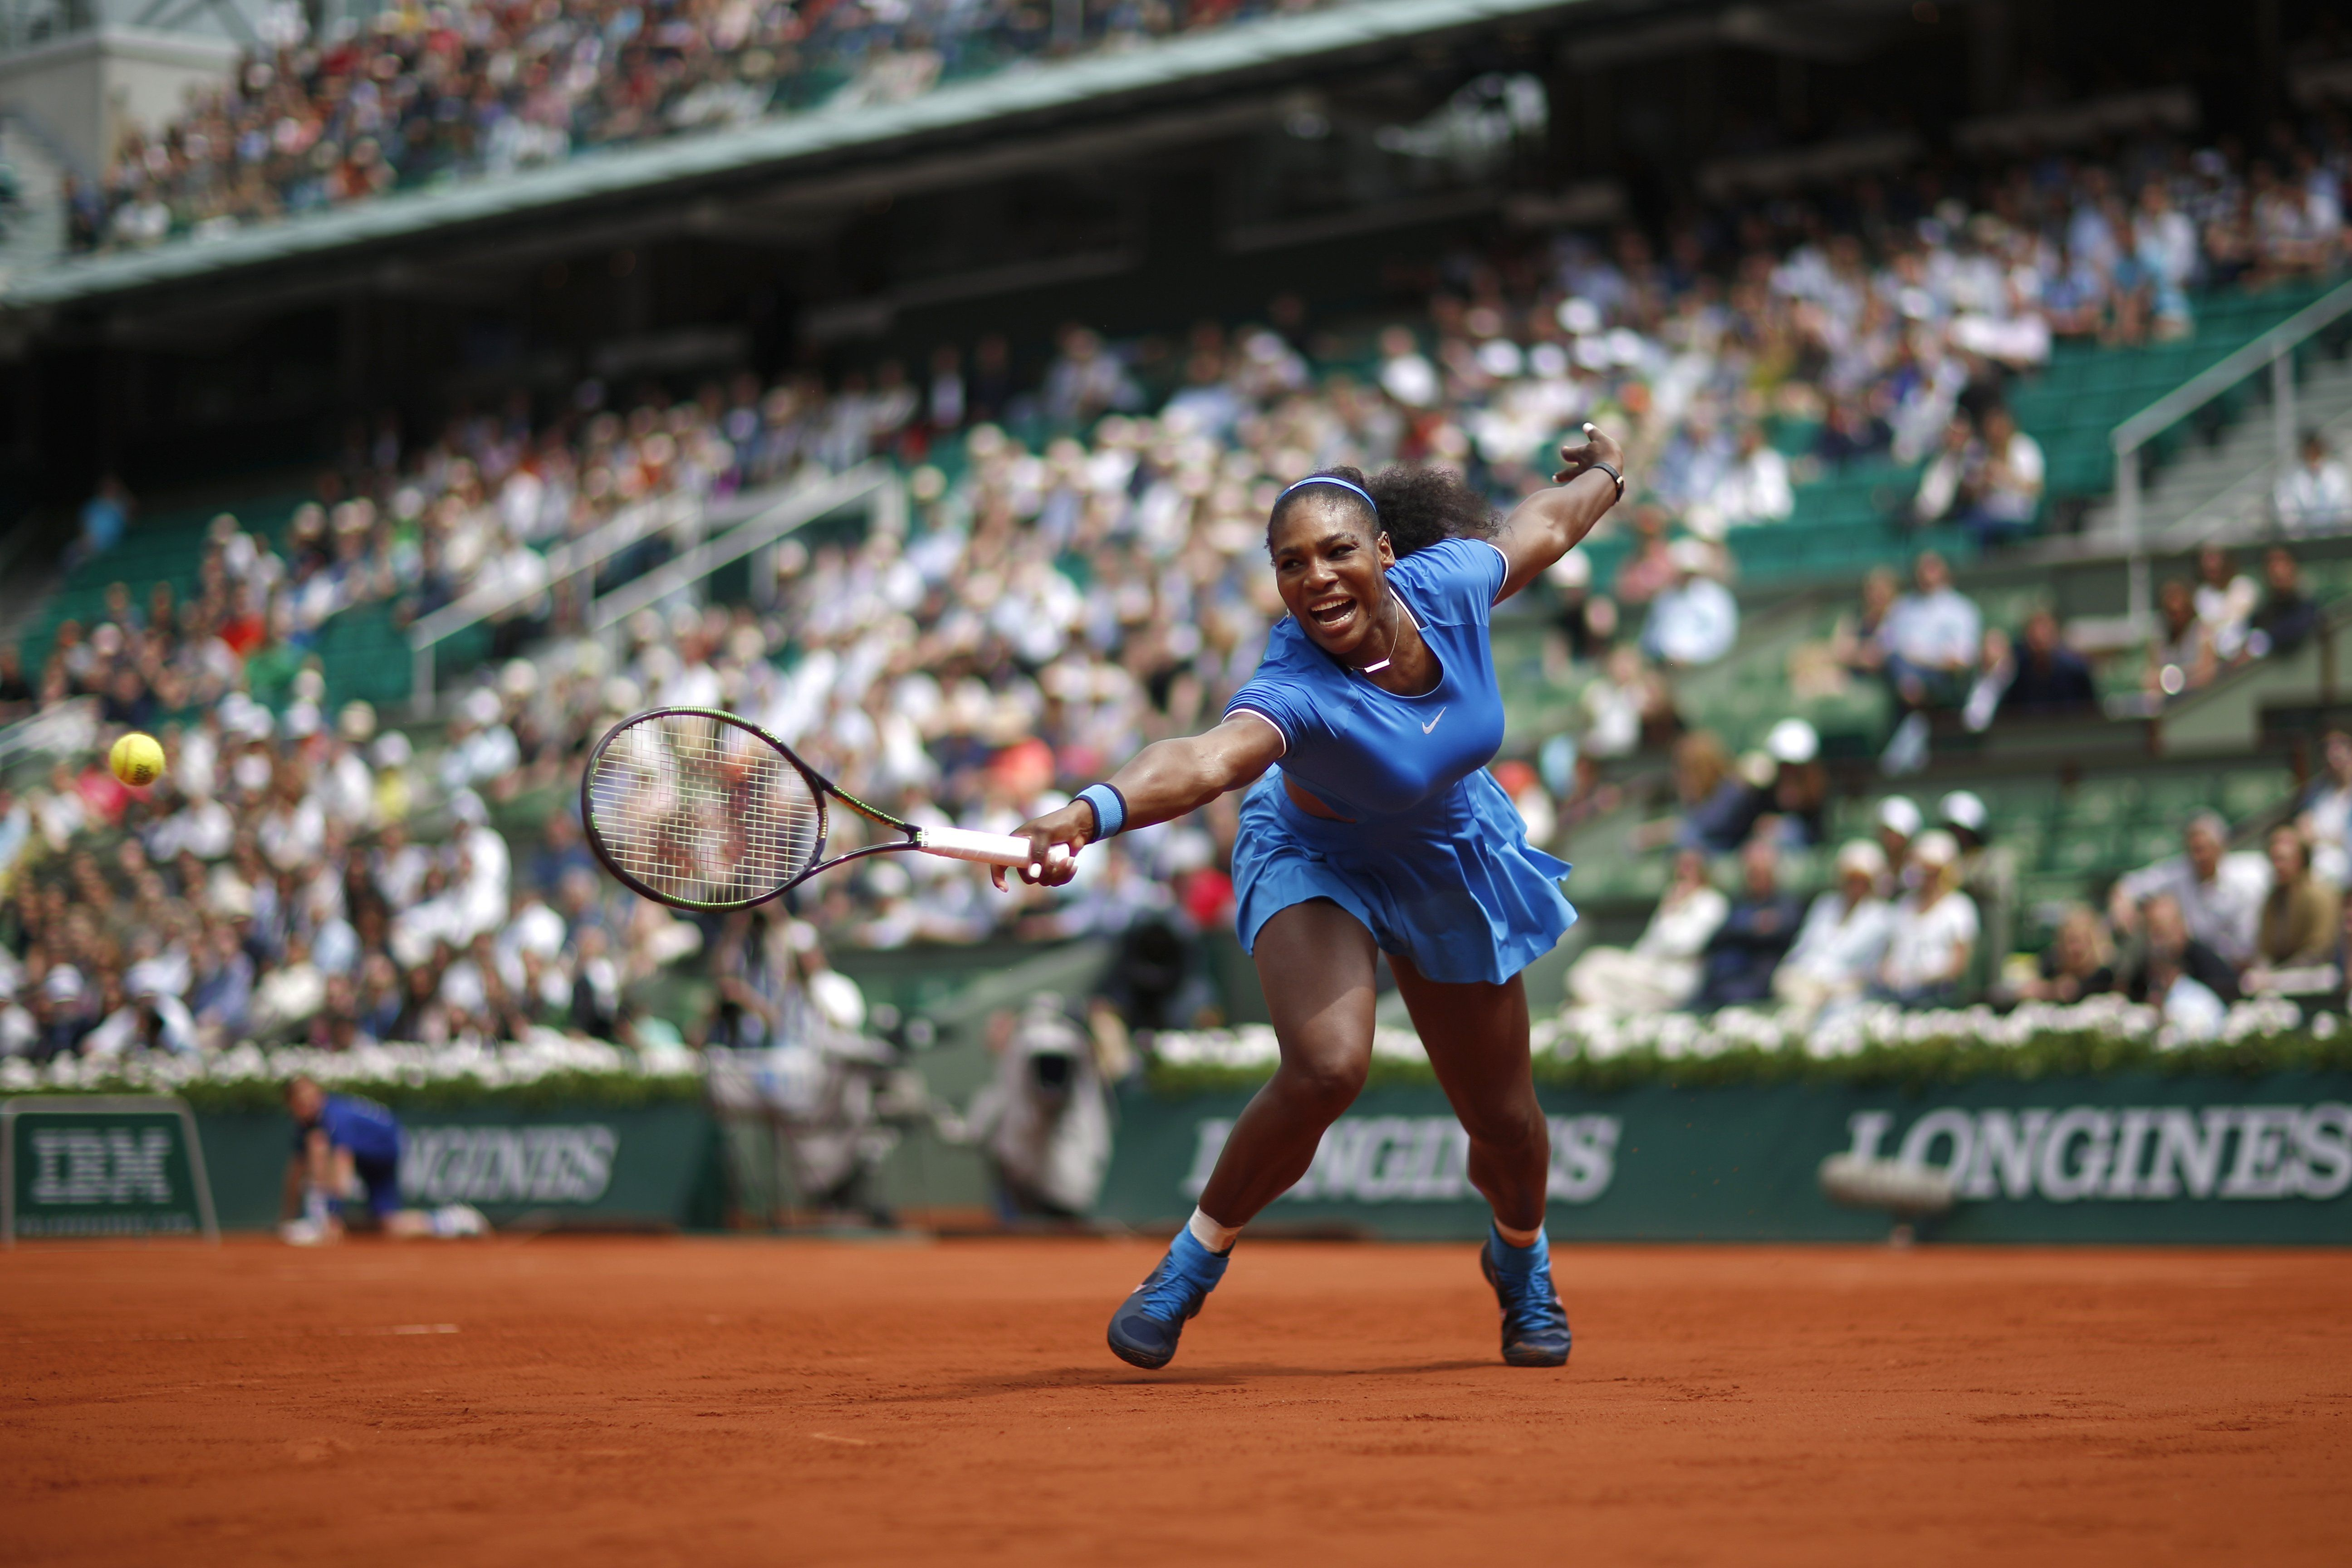 Serena Williams stretches for a return against France's Kristina Mladenovic in the third round of the French Open at Roland Garros. Williams progressed to the fourth round but her fitful victory over Mladenovic did not suggest that the defence of her title will be straightforward. Photograph: Christophe Ena/AP